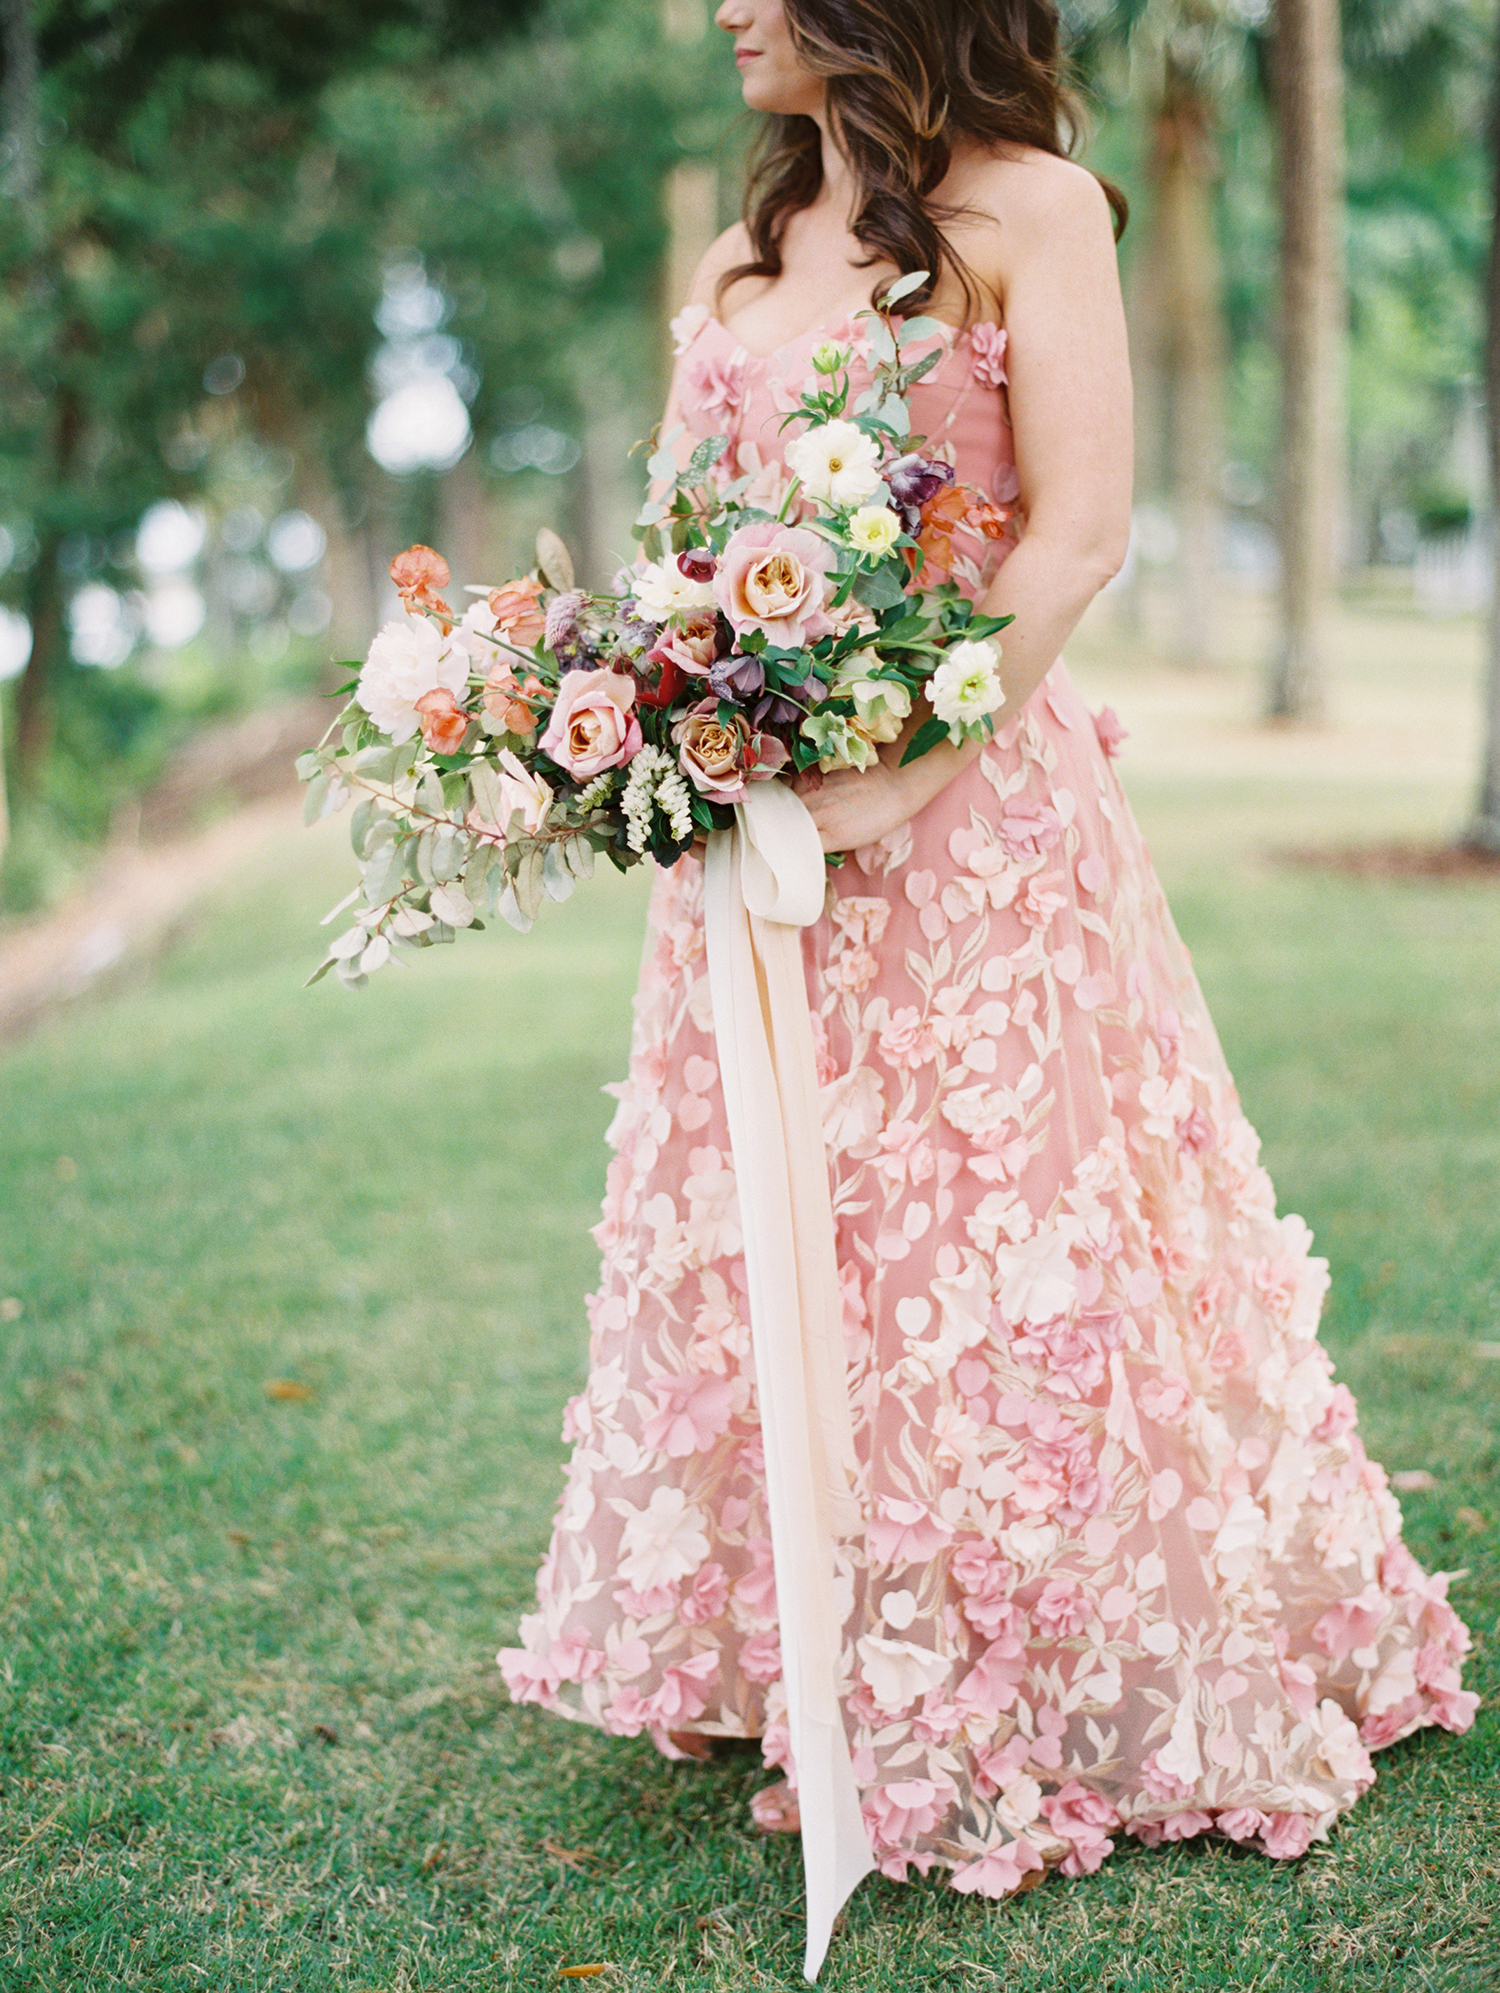 pink wedding dress with floral details